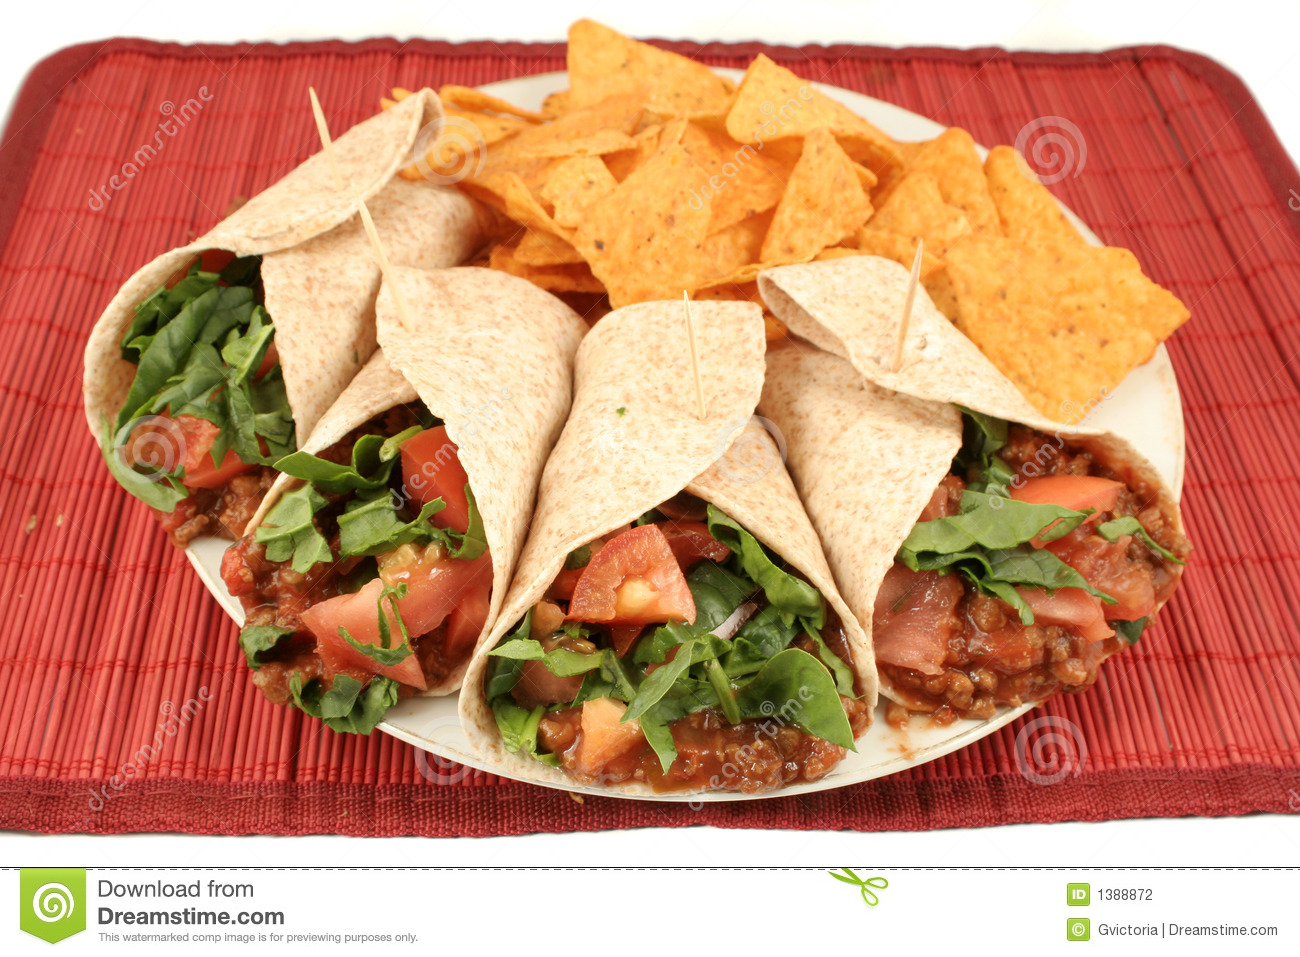 Nourriture mexicaine photo stock image du fajita d ner 1388872 for Cuisine mexicaine